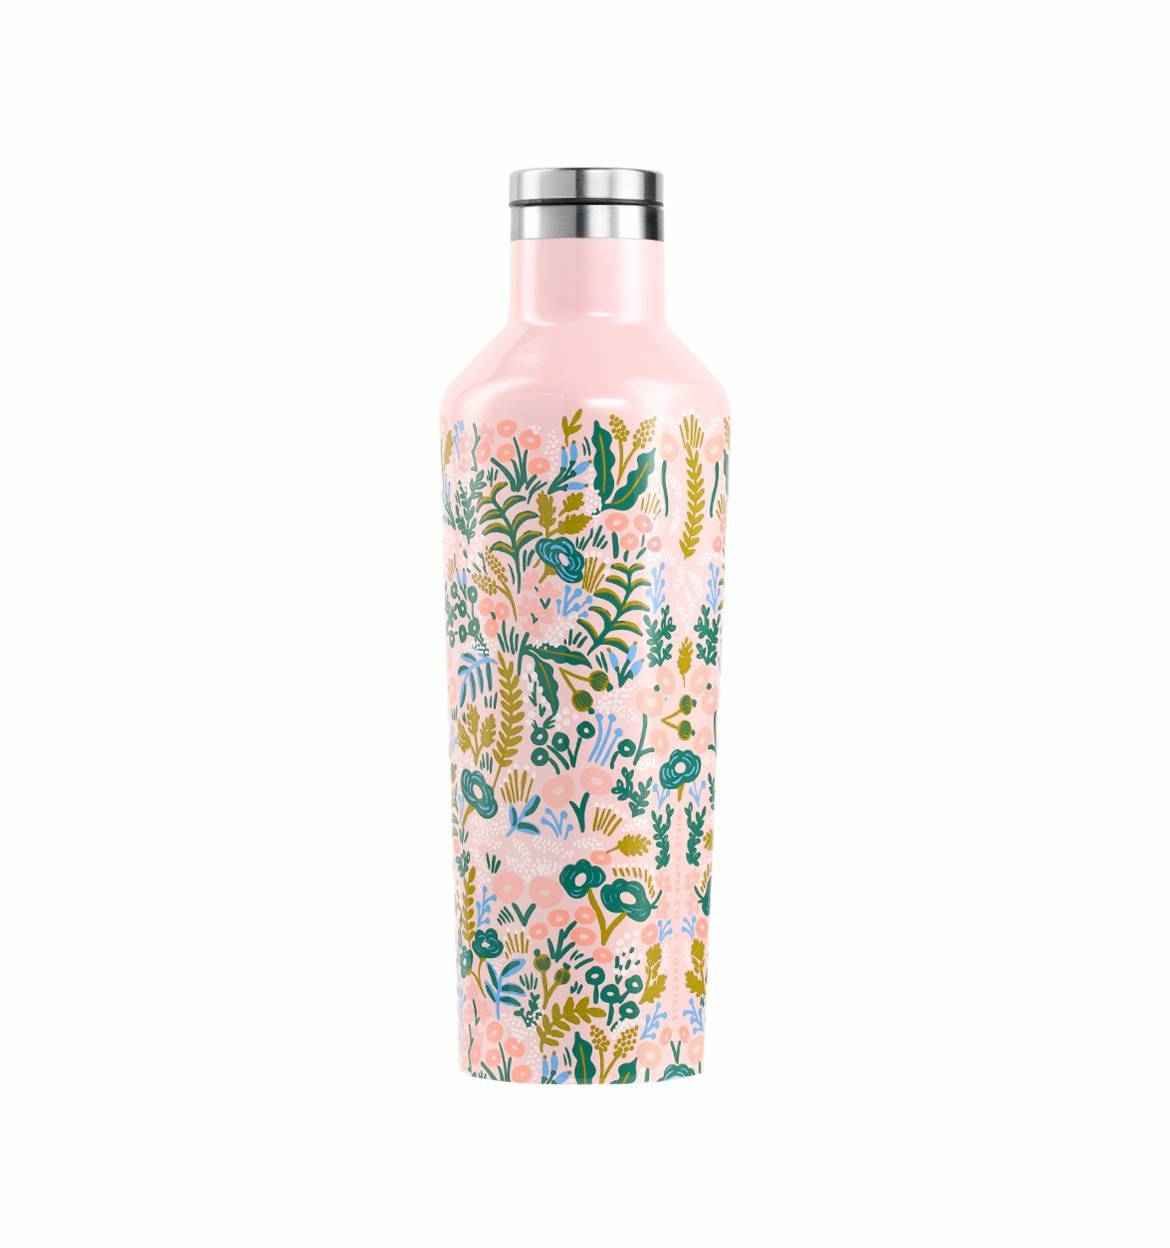 Floral Water Bottle - Rifle Paper Co. + Corkcicle